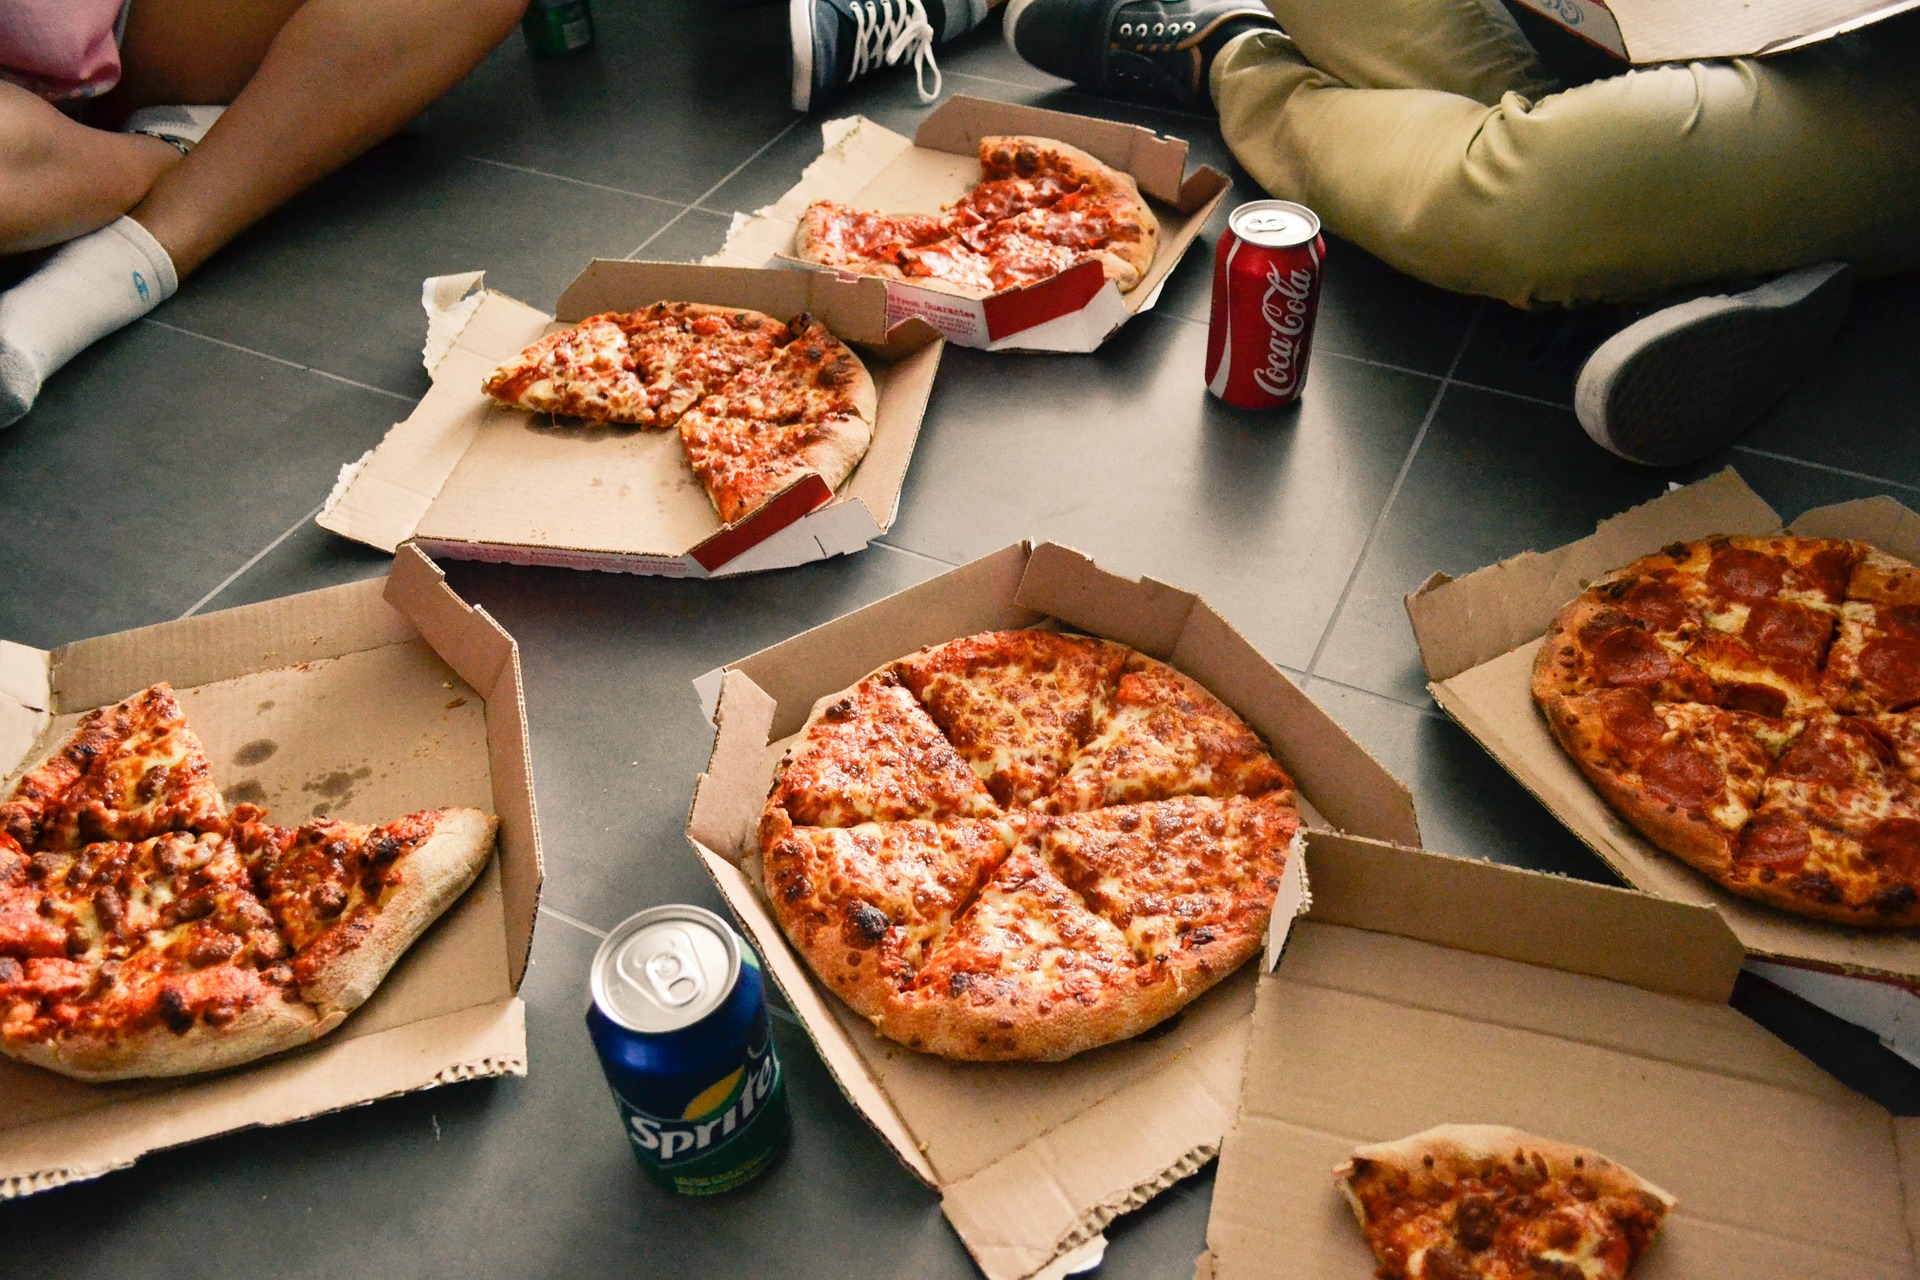 Perks Vs Pressure - Counter-intuitively, traditional incentives such as giving pizza for hitting a target can have a negative effect on the wider employee experience. Get in touch to find out more about hidden stressors.